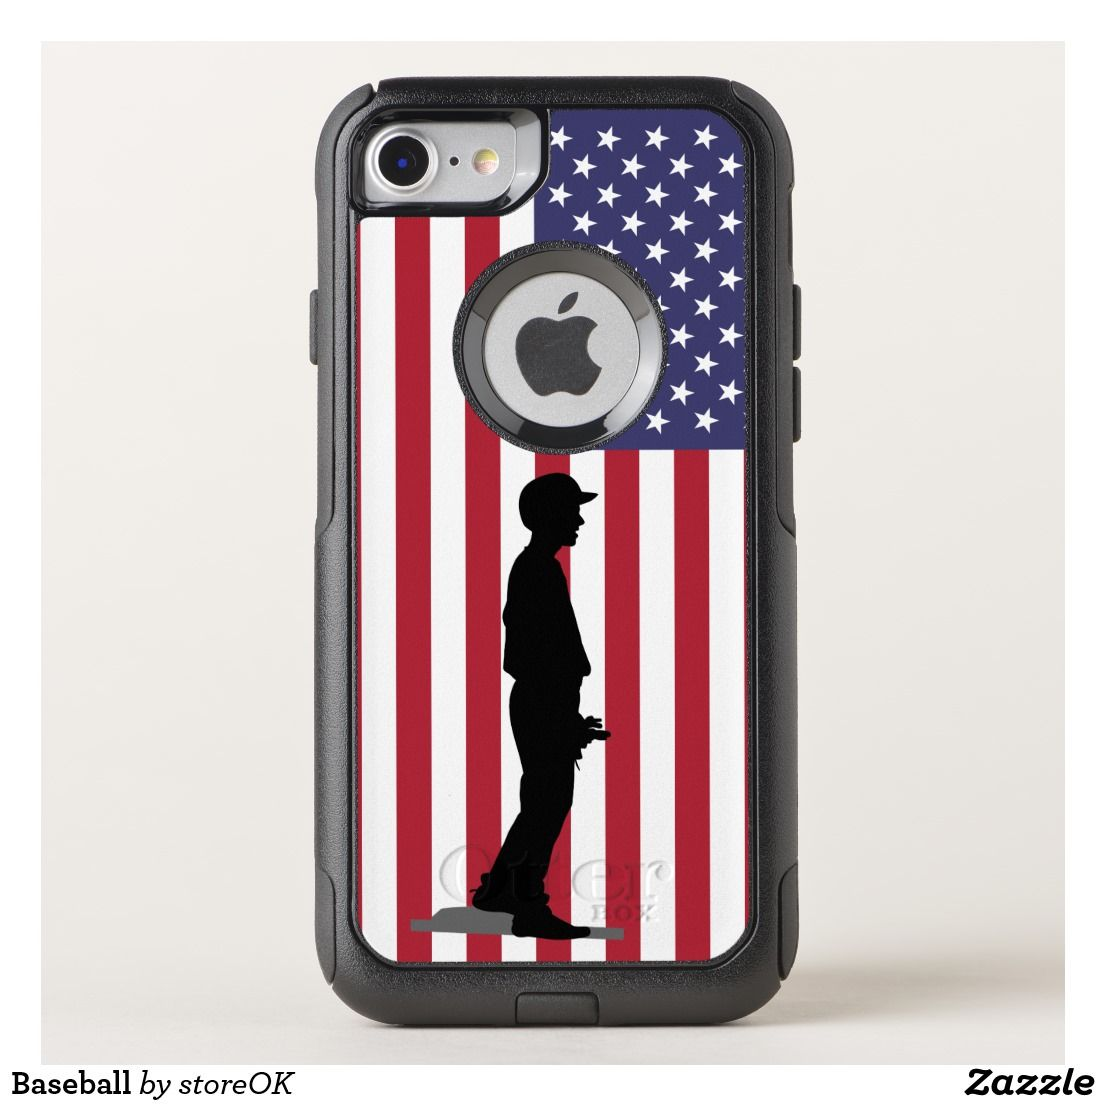 Baseball otterbox iphone case iphone cases